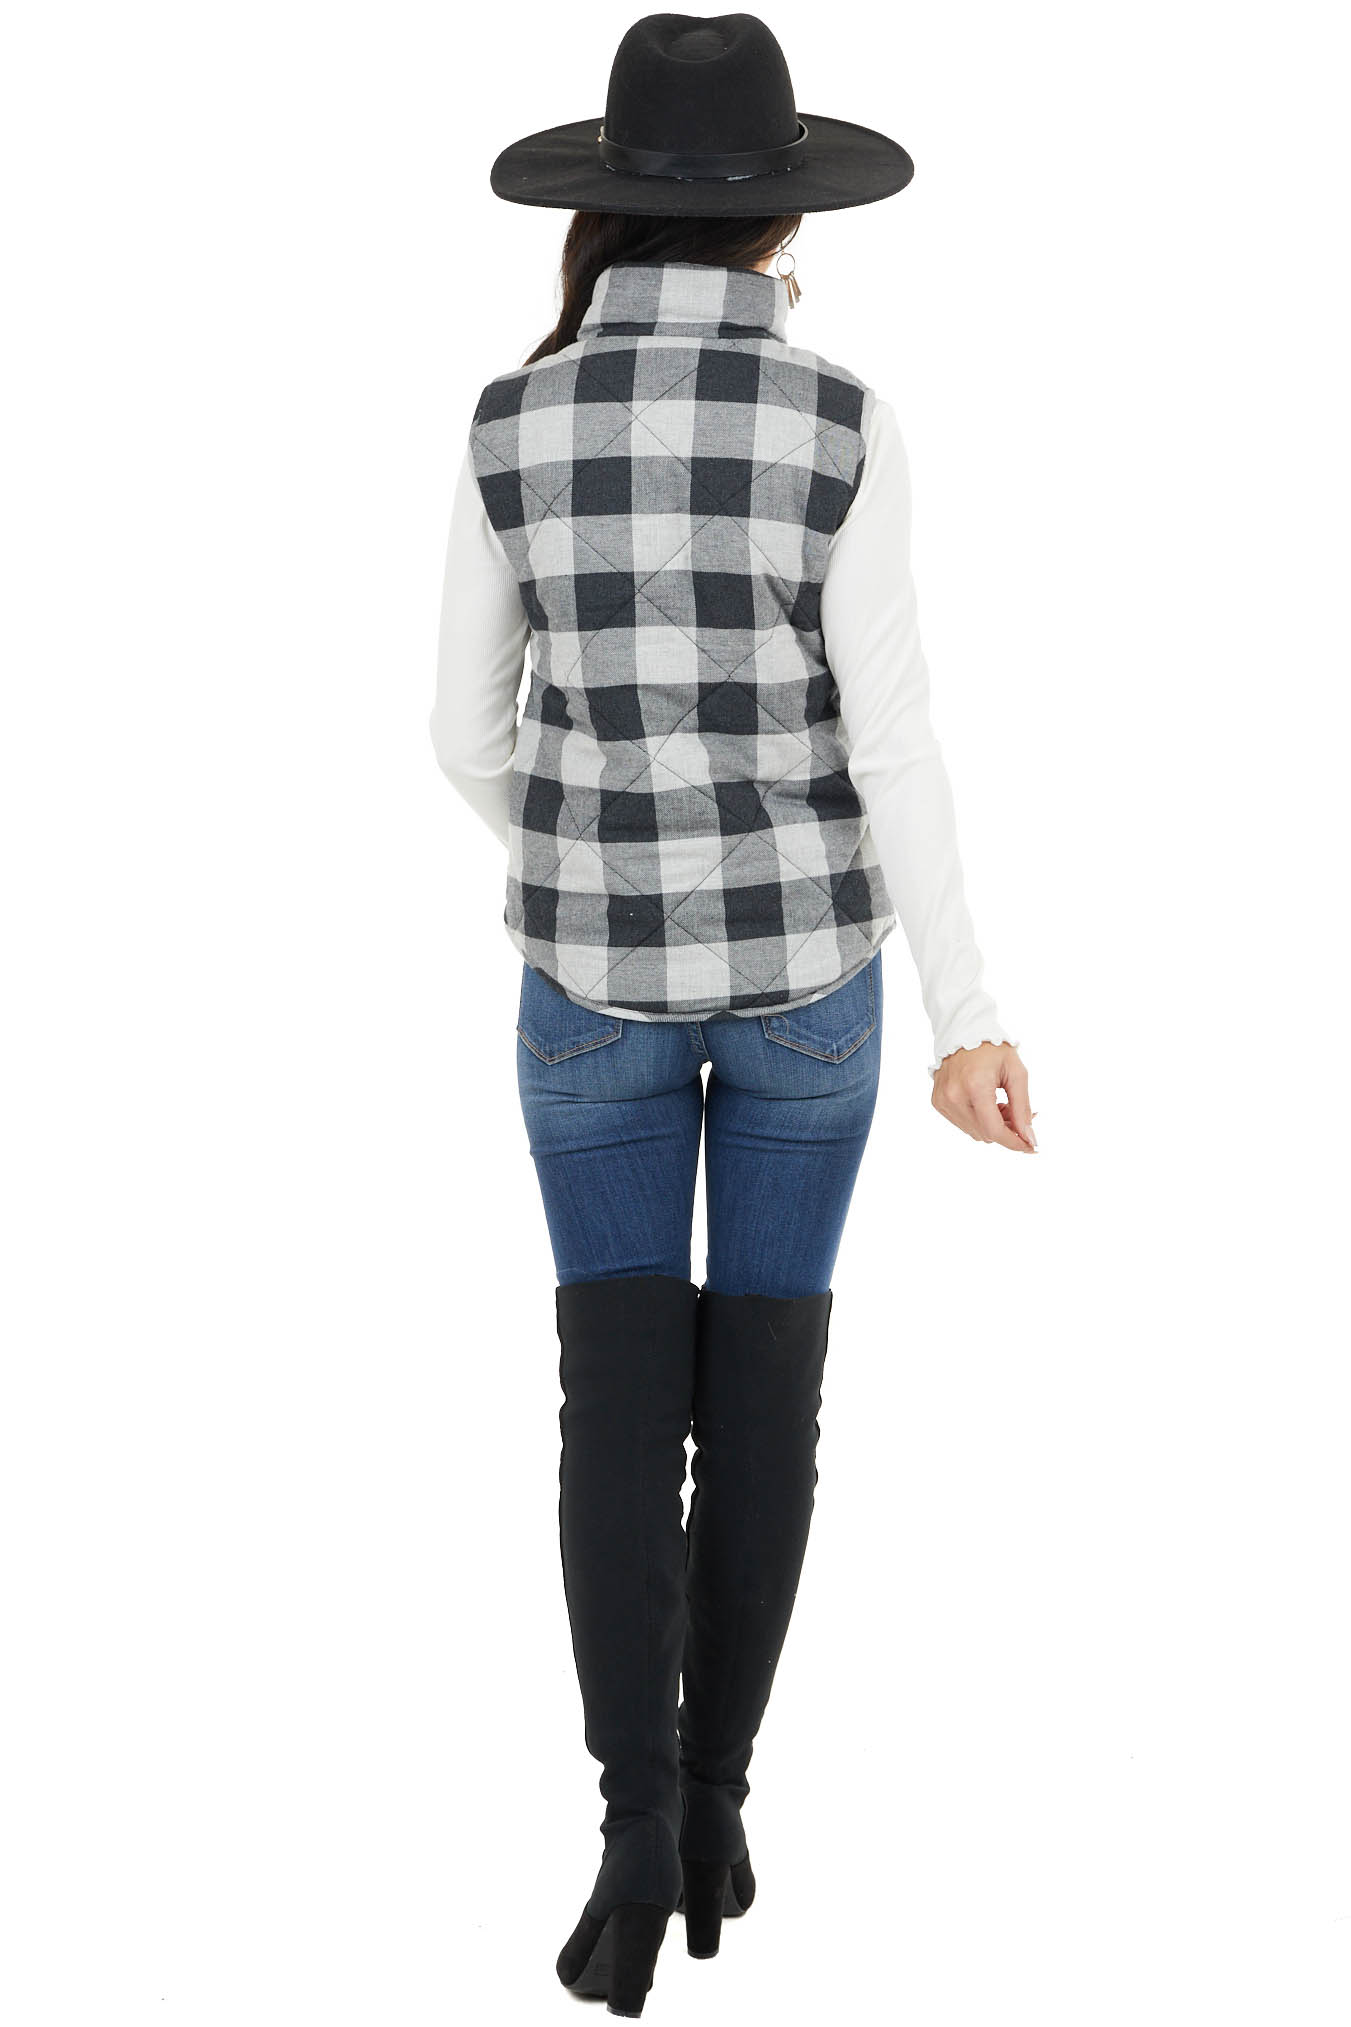 Dove Grey Buffalo Plaid Padded Zip Up Vest with Pockets